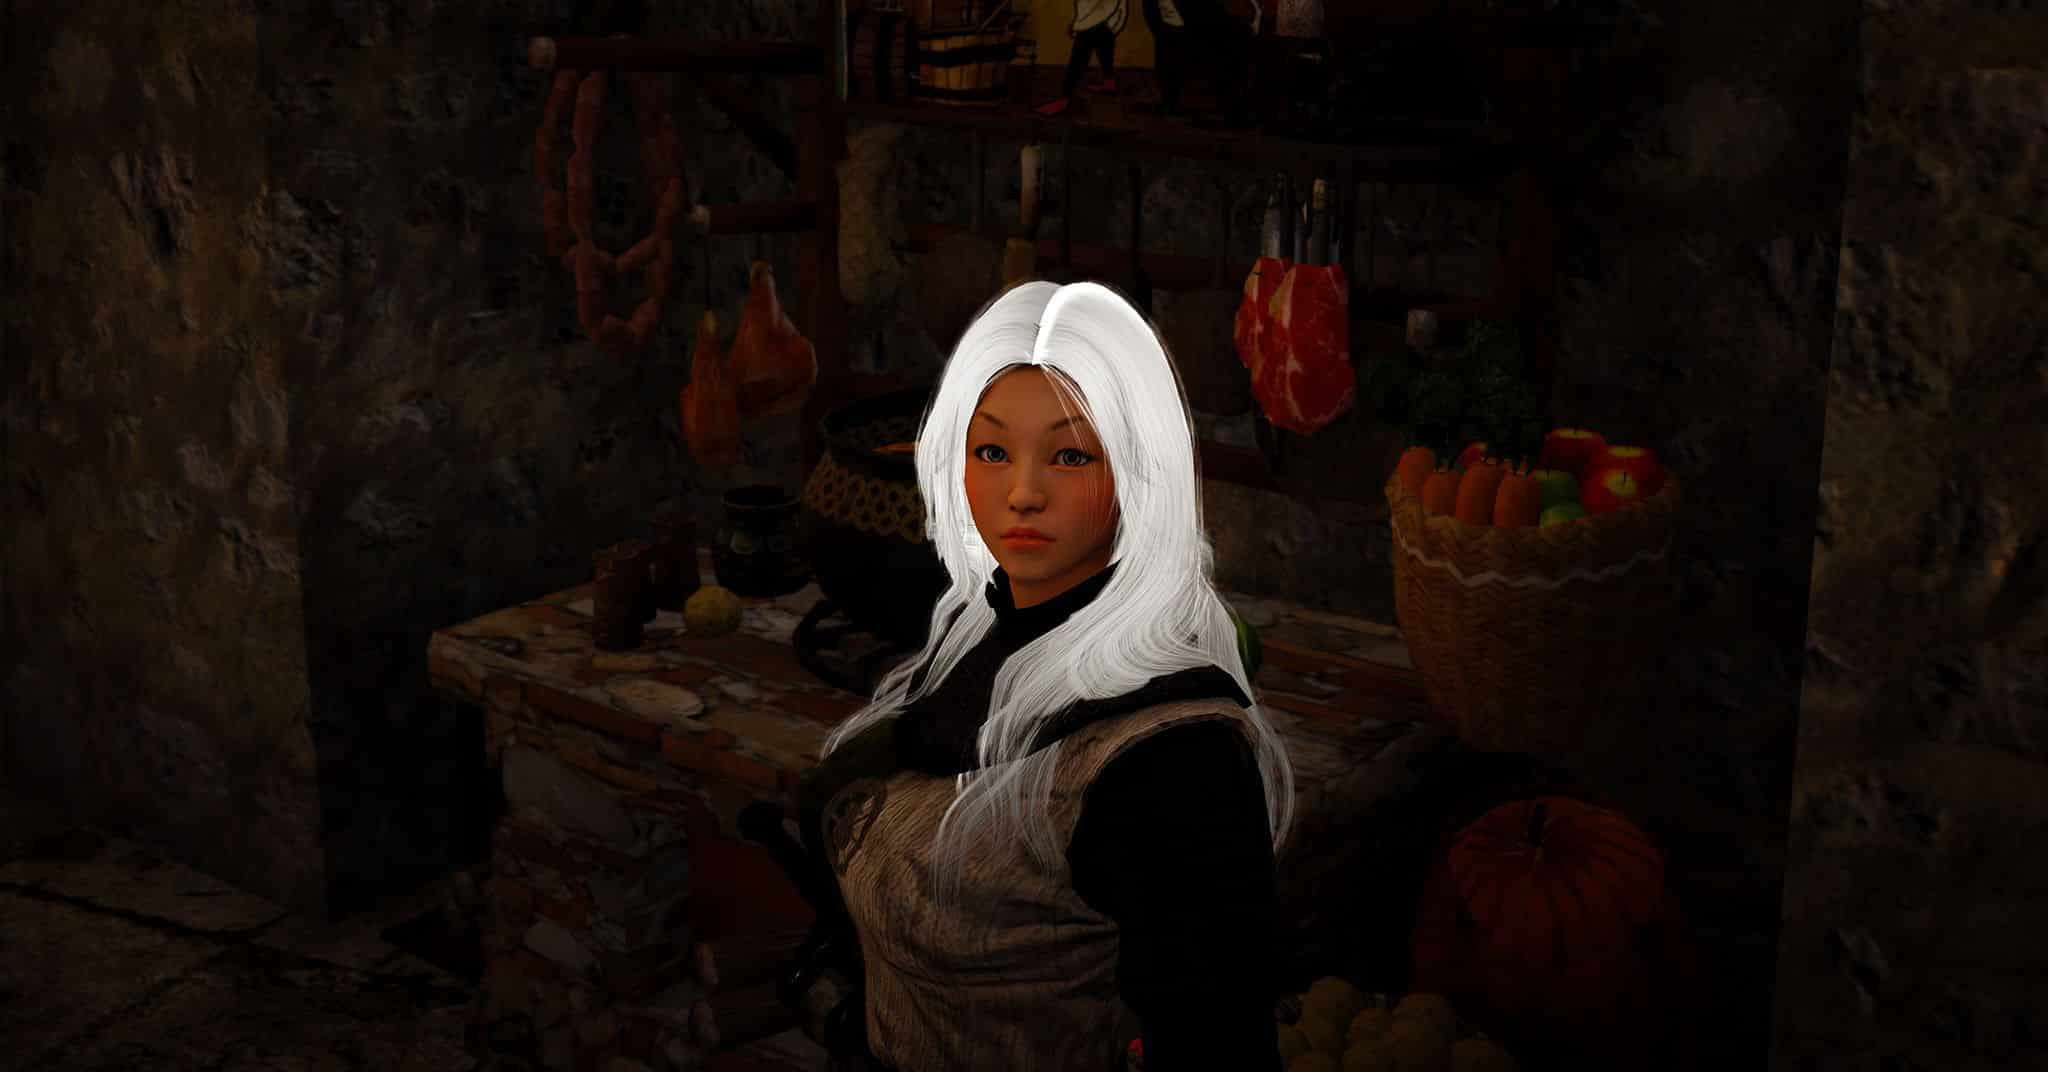 Bdo Best Pets 2019 Black Desert Online   How to Make Good Feed for Pets | Altar of Gaming